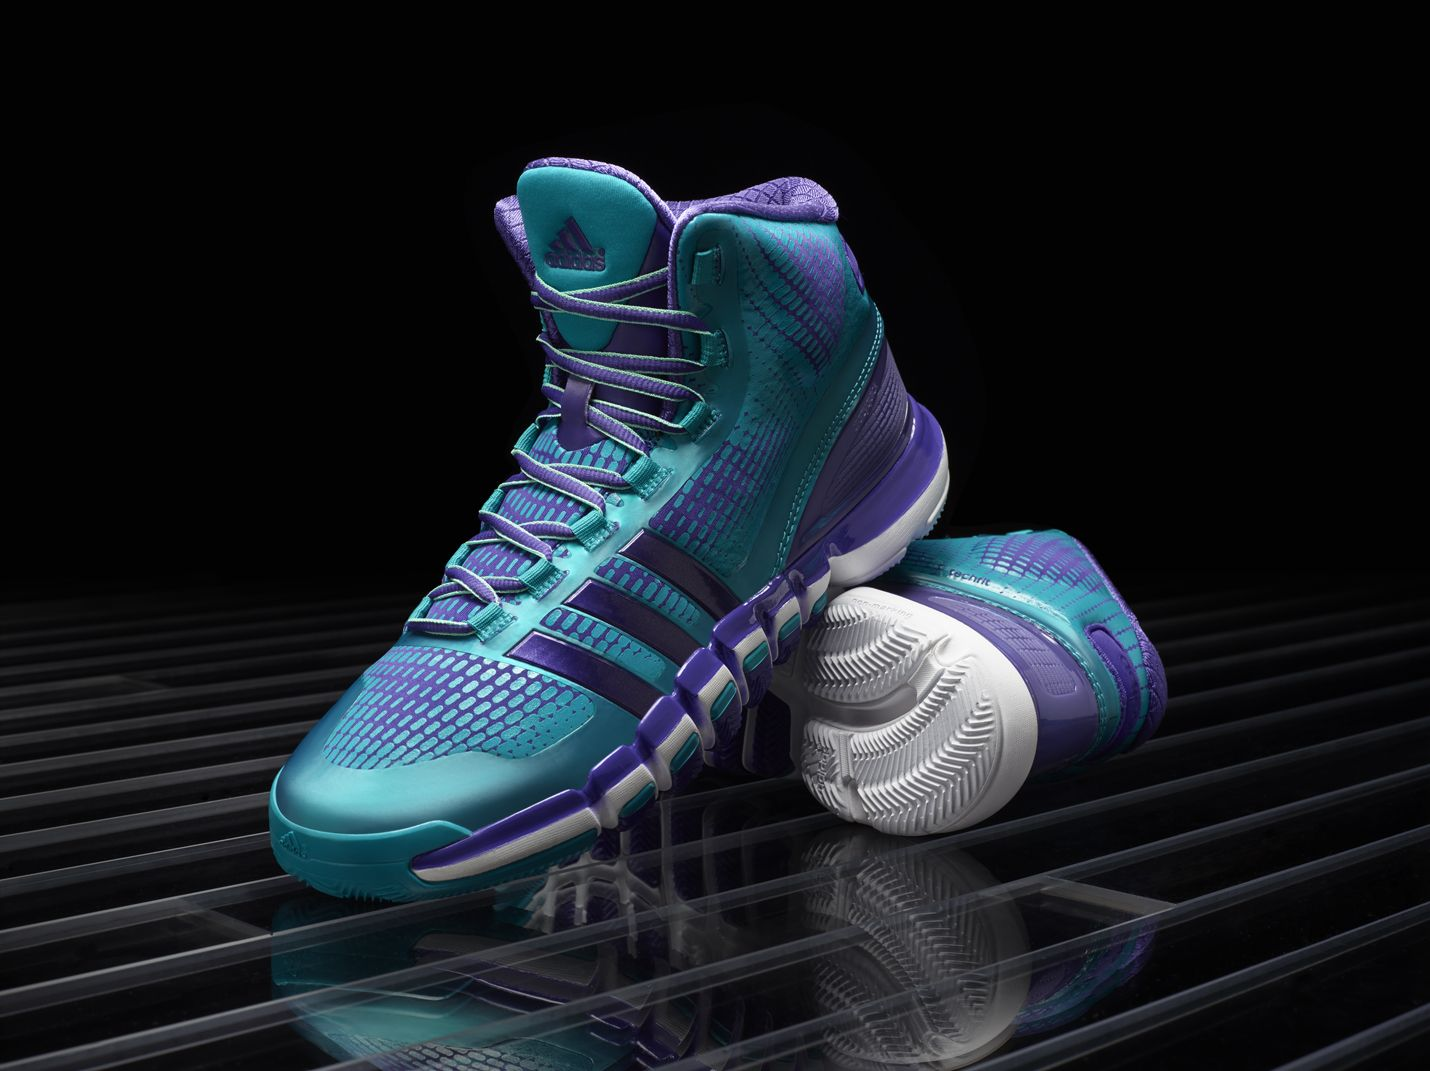 207113310693f4 The Crazyquick drops May 1st in five colorways and is available for pre- order today at adidas.com.